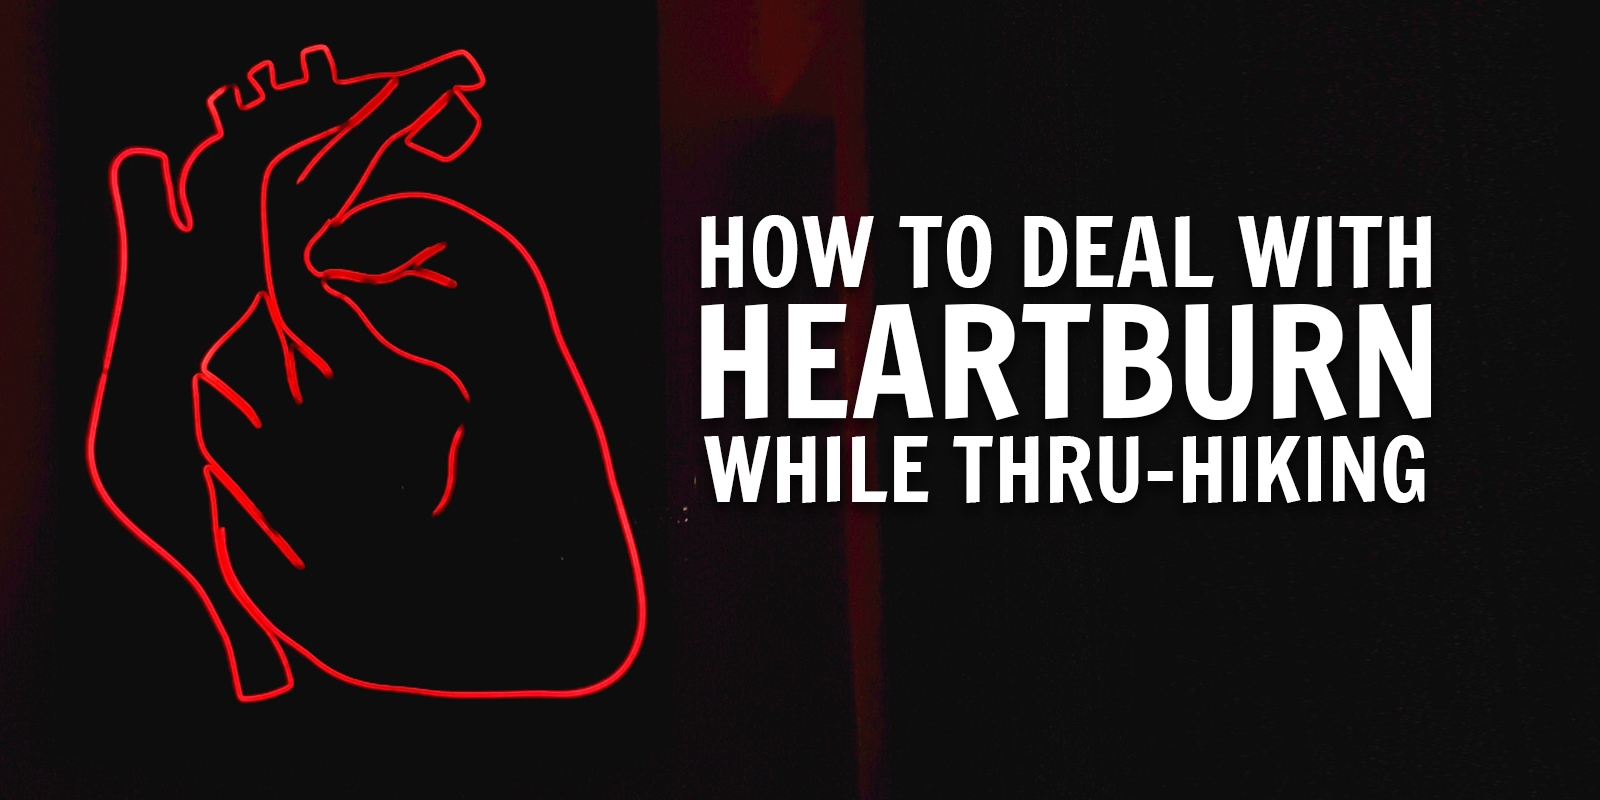 3 Strategies for Dealing with Heart Burn While Thru-Hiking